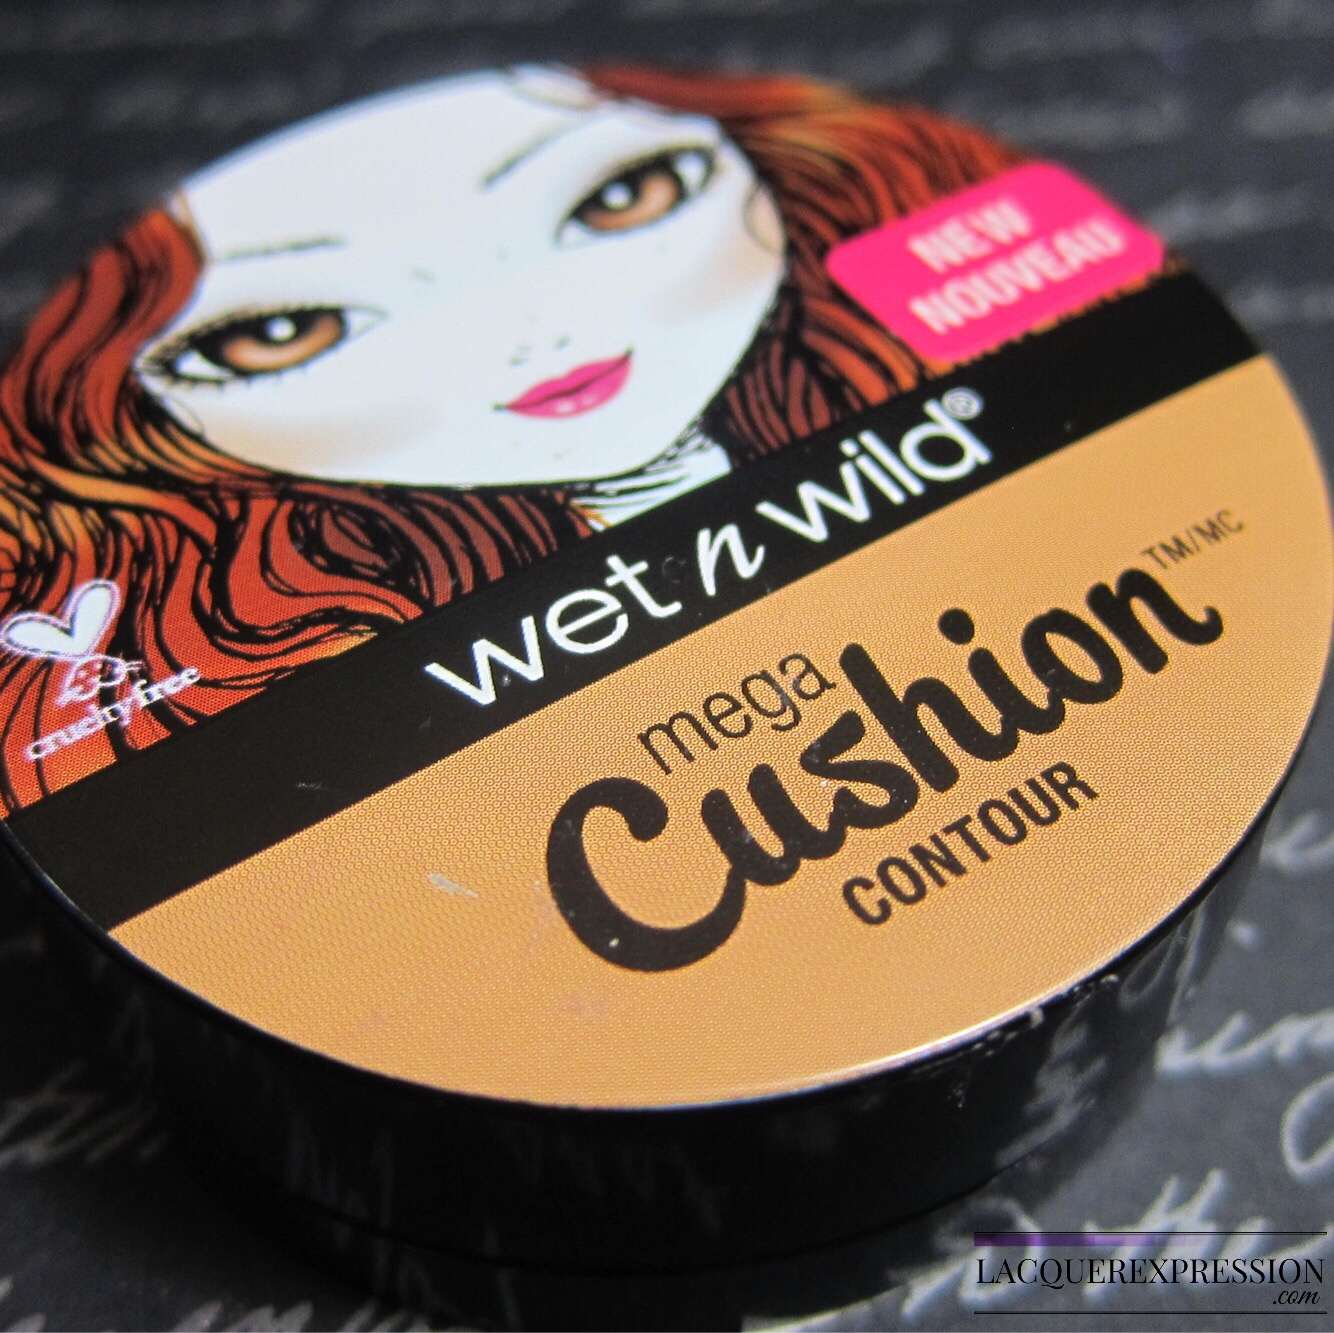 Megacushion Contour by Wet n Wild Beauty #5